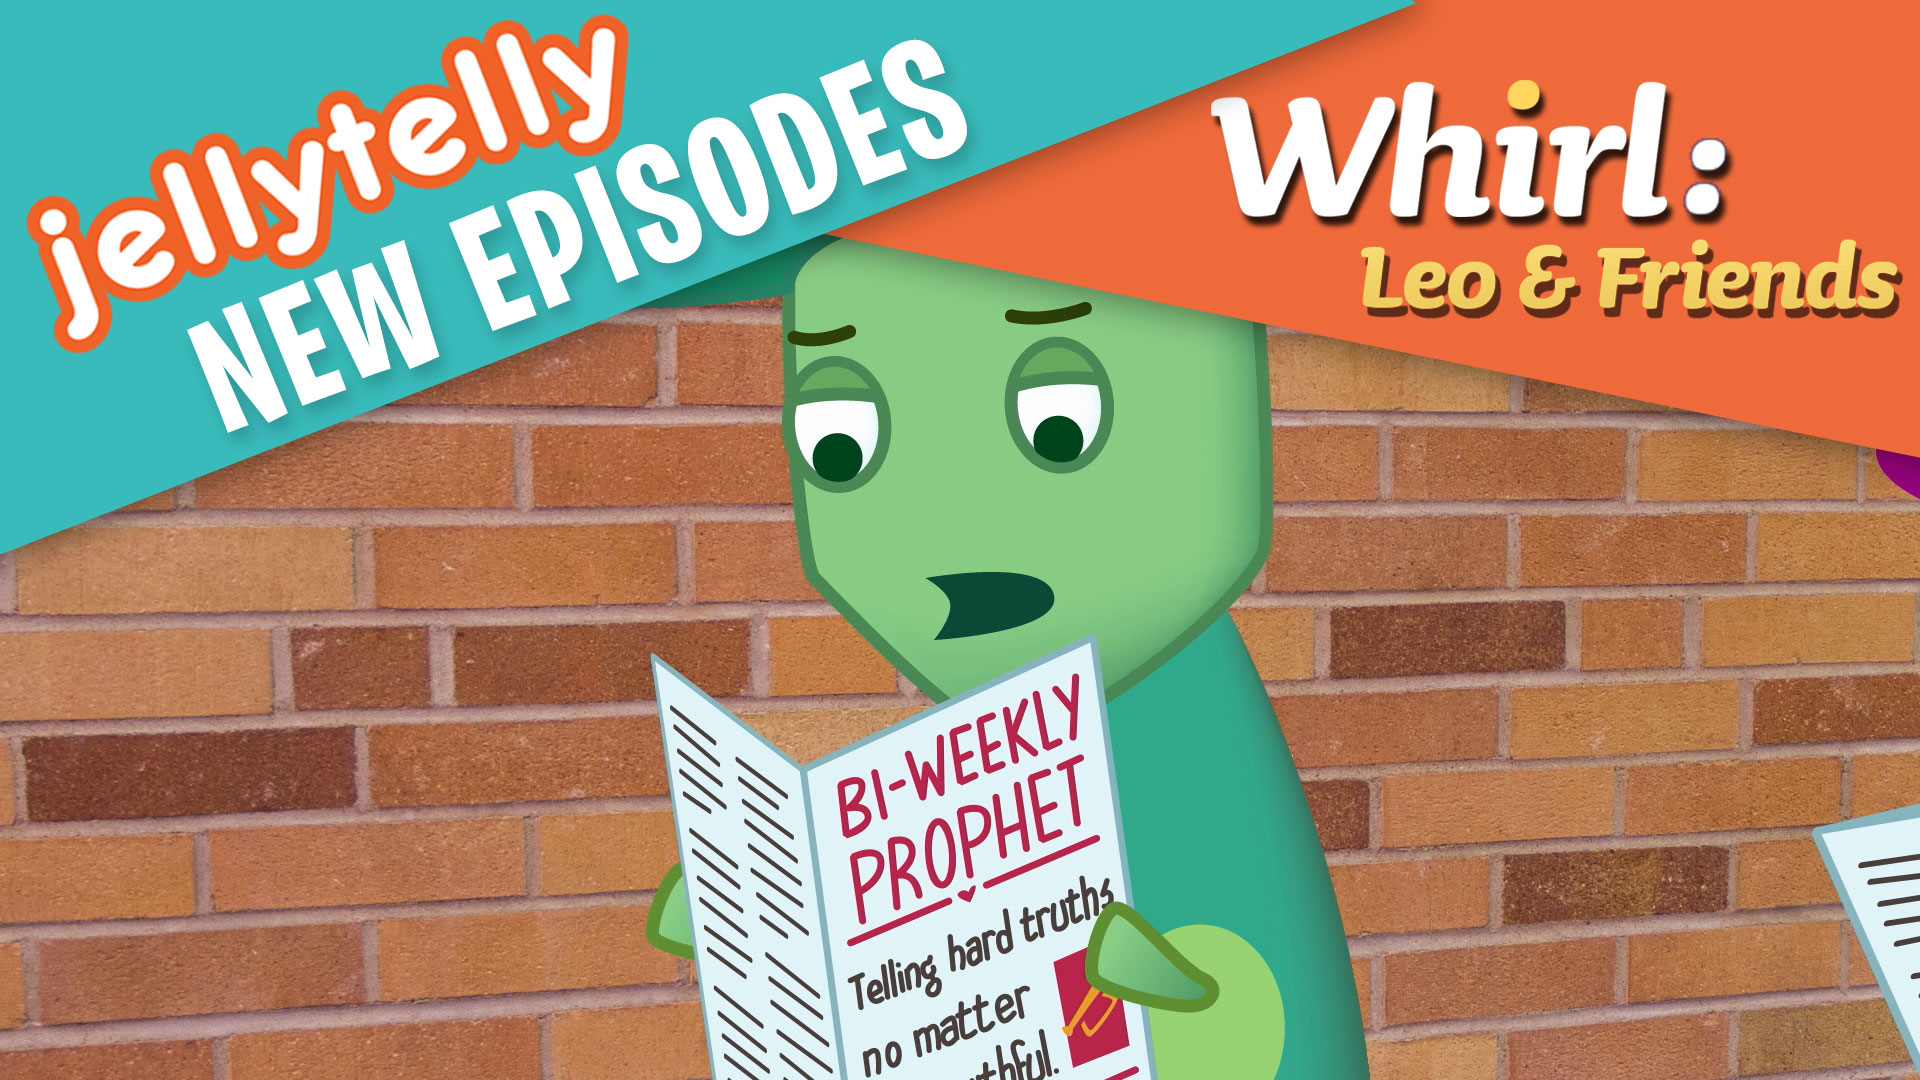 Whirl leo v3 ep09 featured preview image